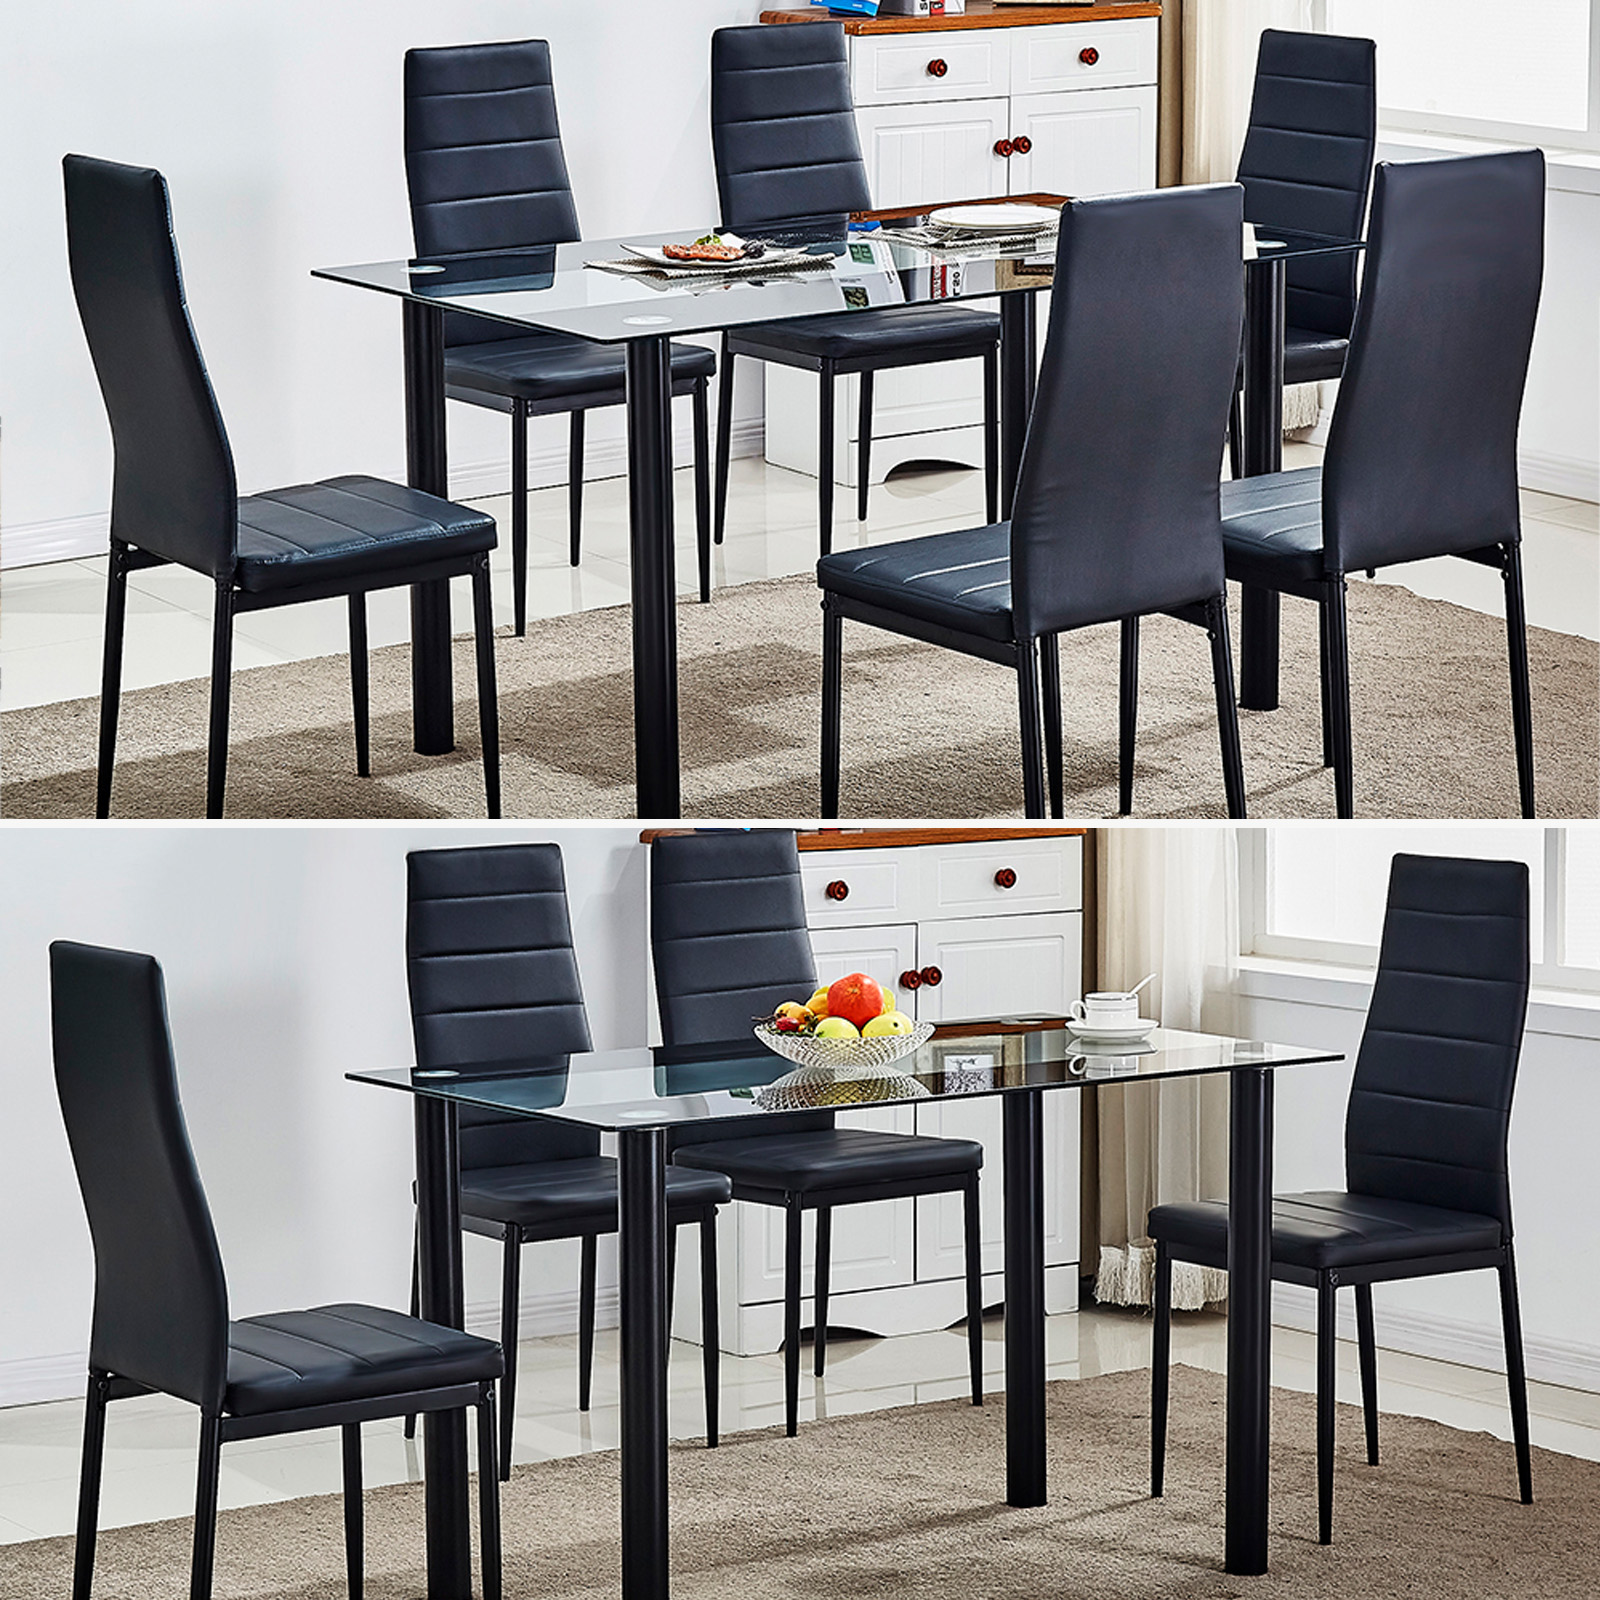 Details about tempered glass dining table set and 4 6 faux leather chairs kitchen furniture